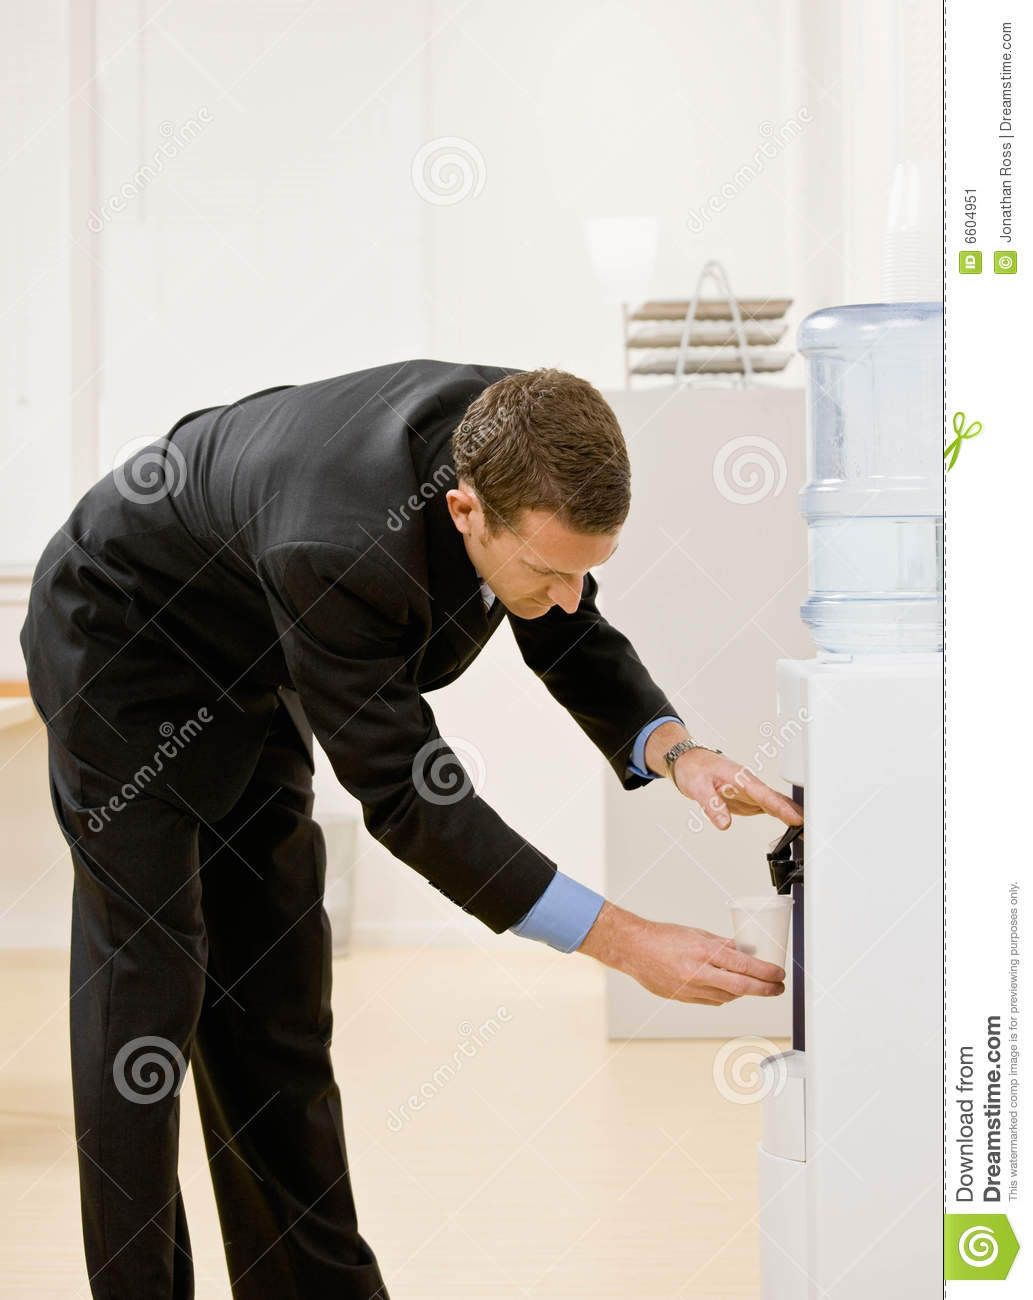 Business man gets water from water cooler